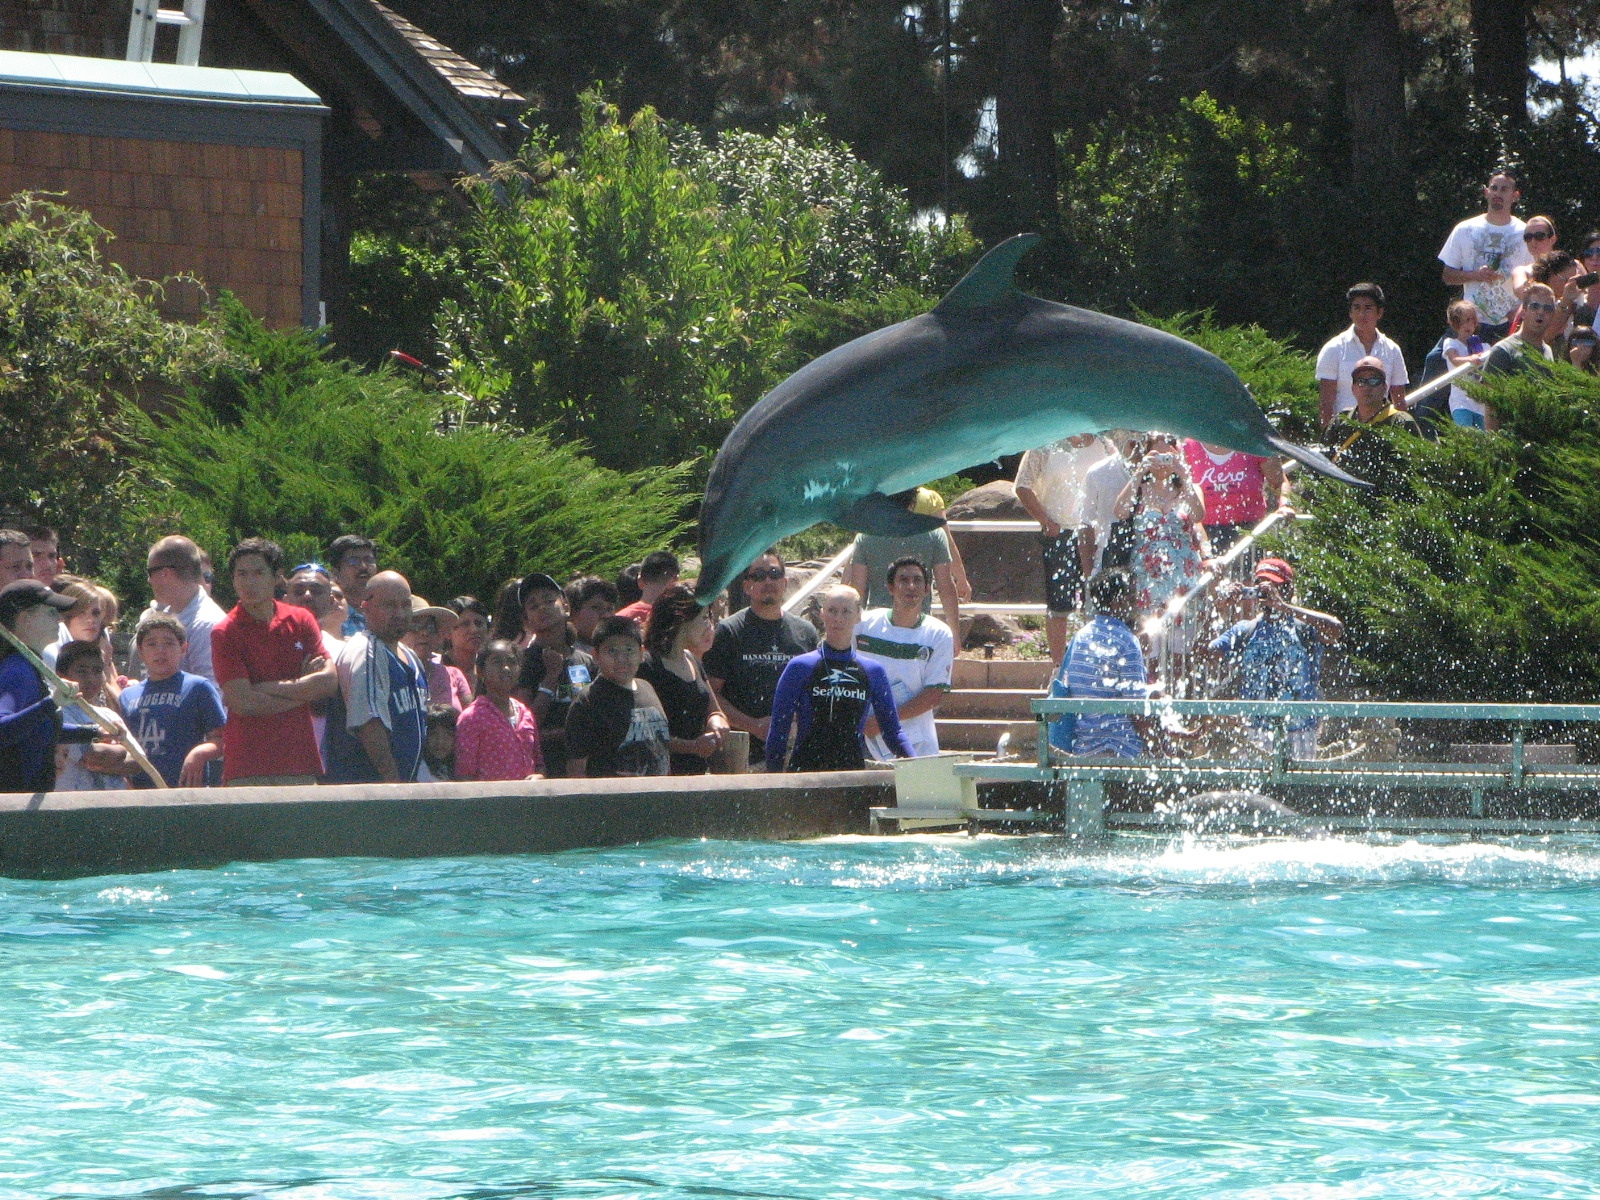 Sea world dolphins jumping